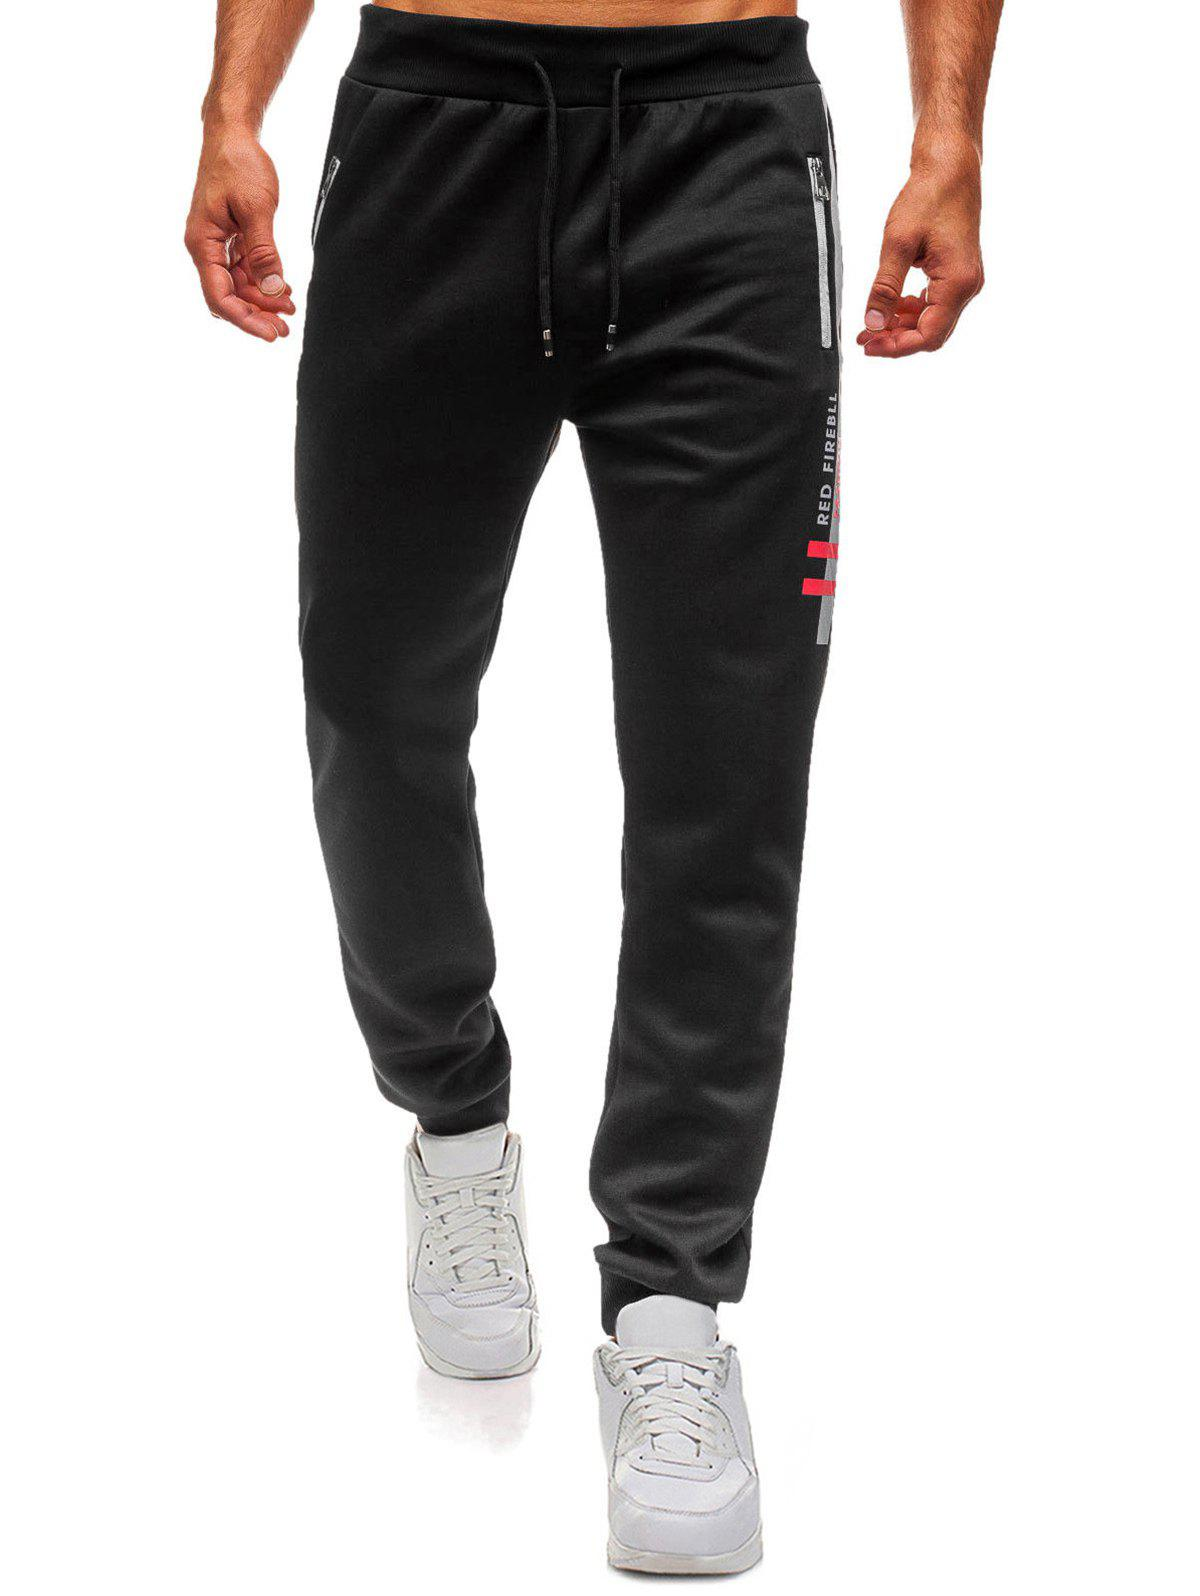 Letter Graphic Contrast Color Drawstring Jogger Pants - BLACK XL